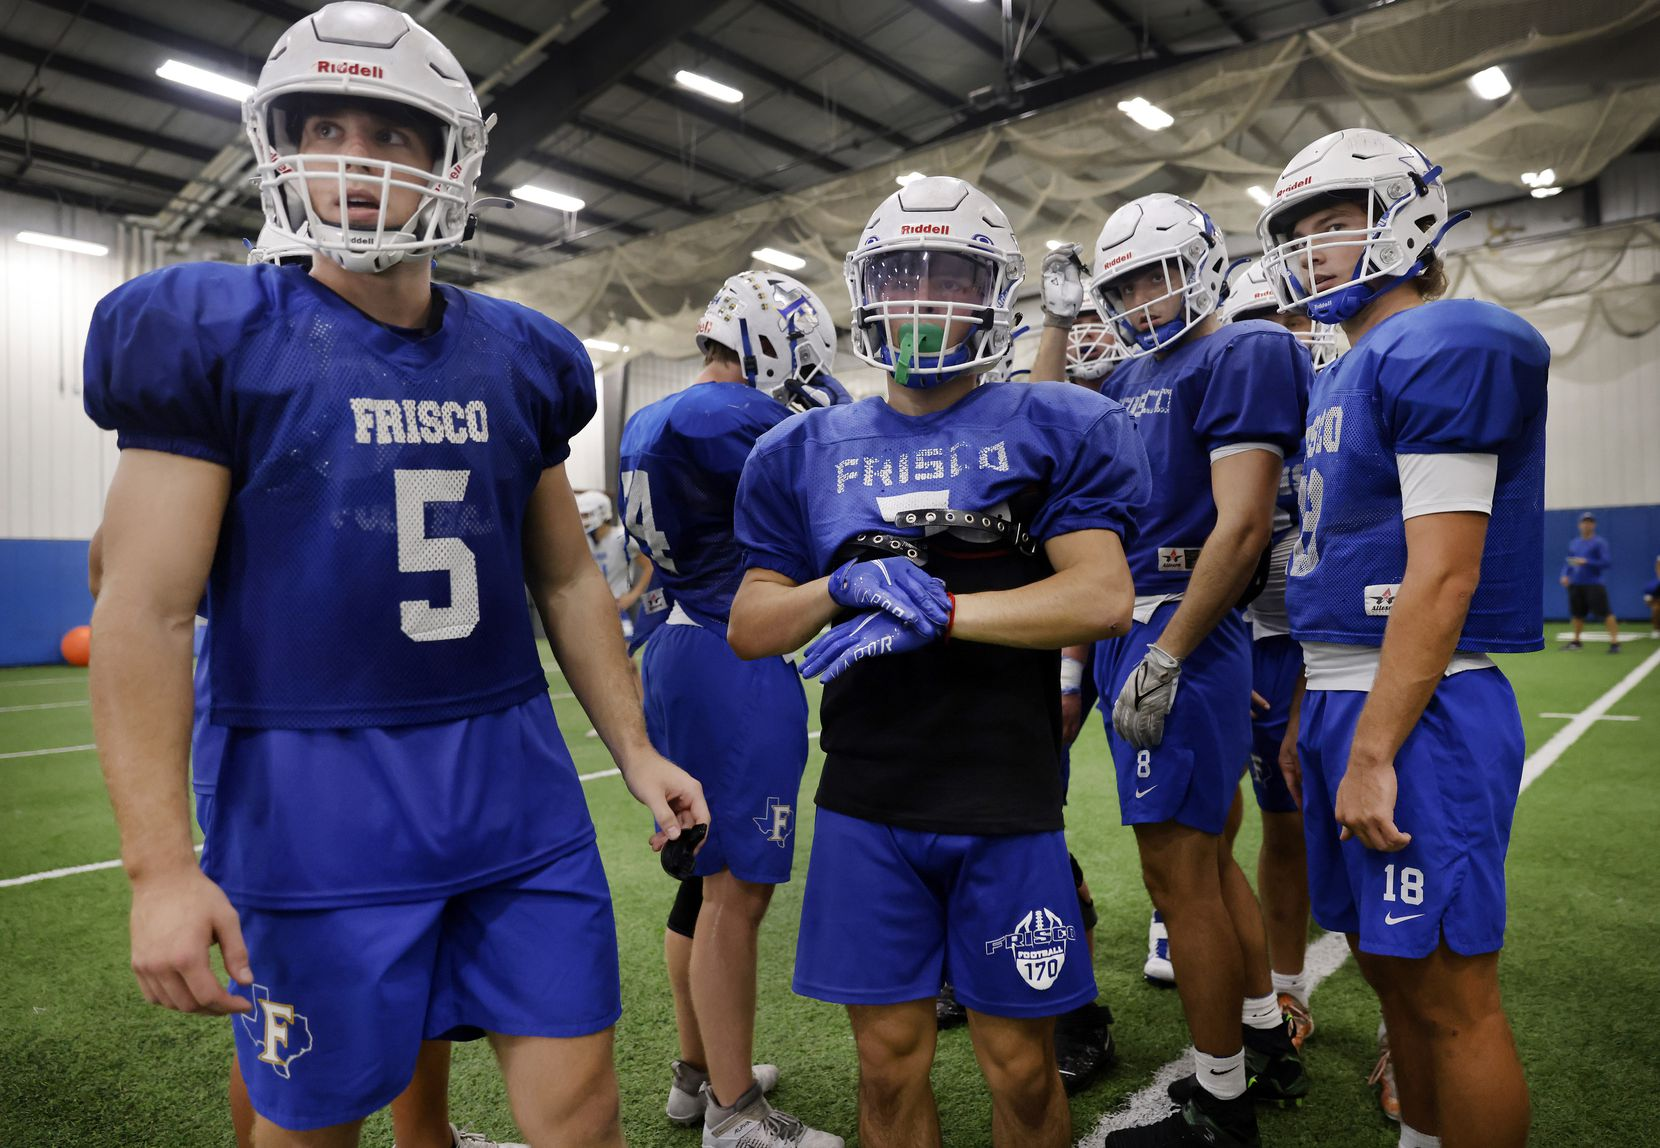 Frisco High running backs Bradford Martin (left), Dylan Hardin (center) and quarterback Wyatt Carson (right) listen for the next play to run during practice at the school's indoor facility in Frisco, Texas, Wednesday, October 13, 2021. (Tom Fox/The Dallas Morning News)